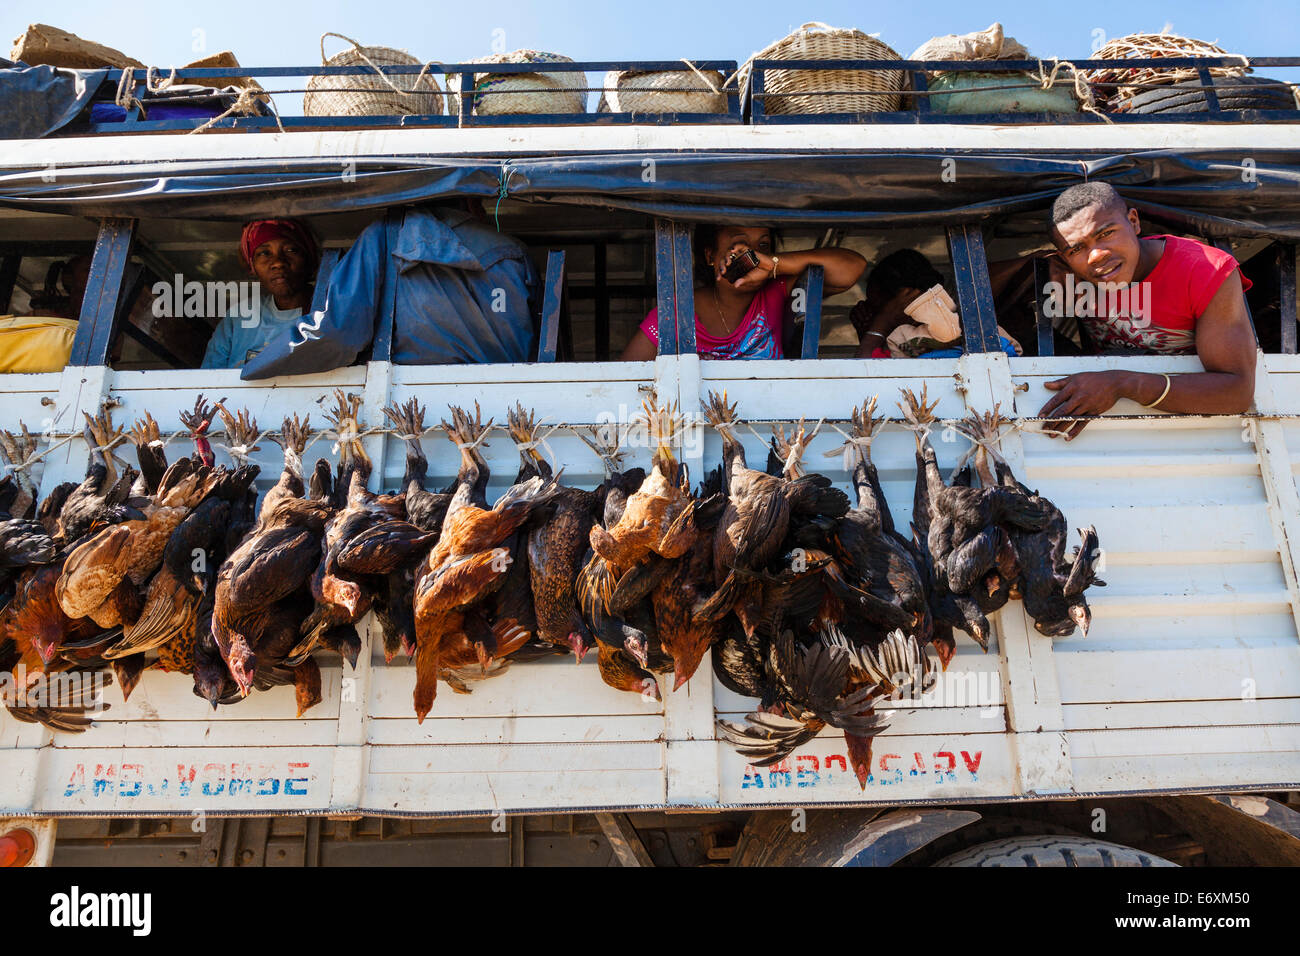 Bus transporting poultry, Tulear, South-west Madagascar, Africa - Stock Image